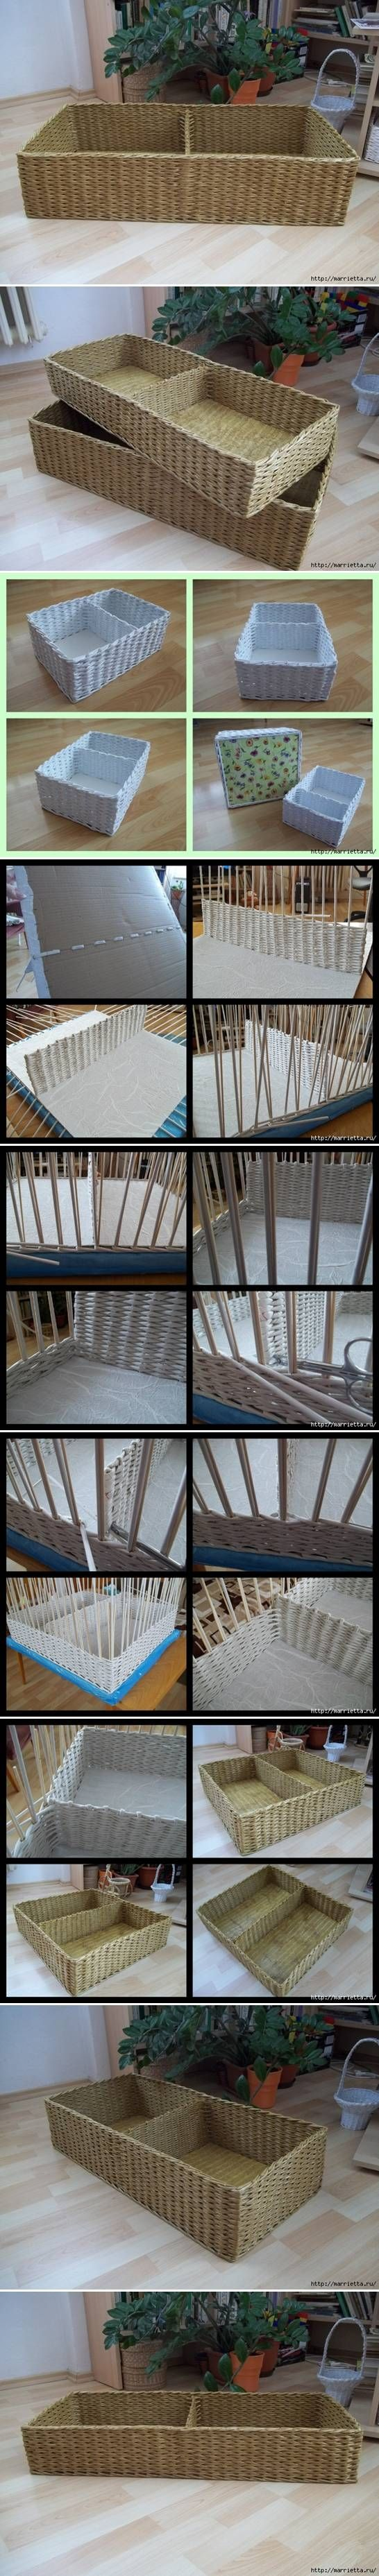 DIY Newspaper Basket with Compartments DIY Newspaper Basket with Compartments by diyforever